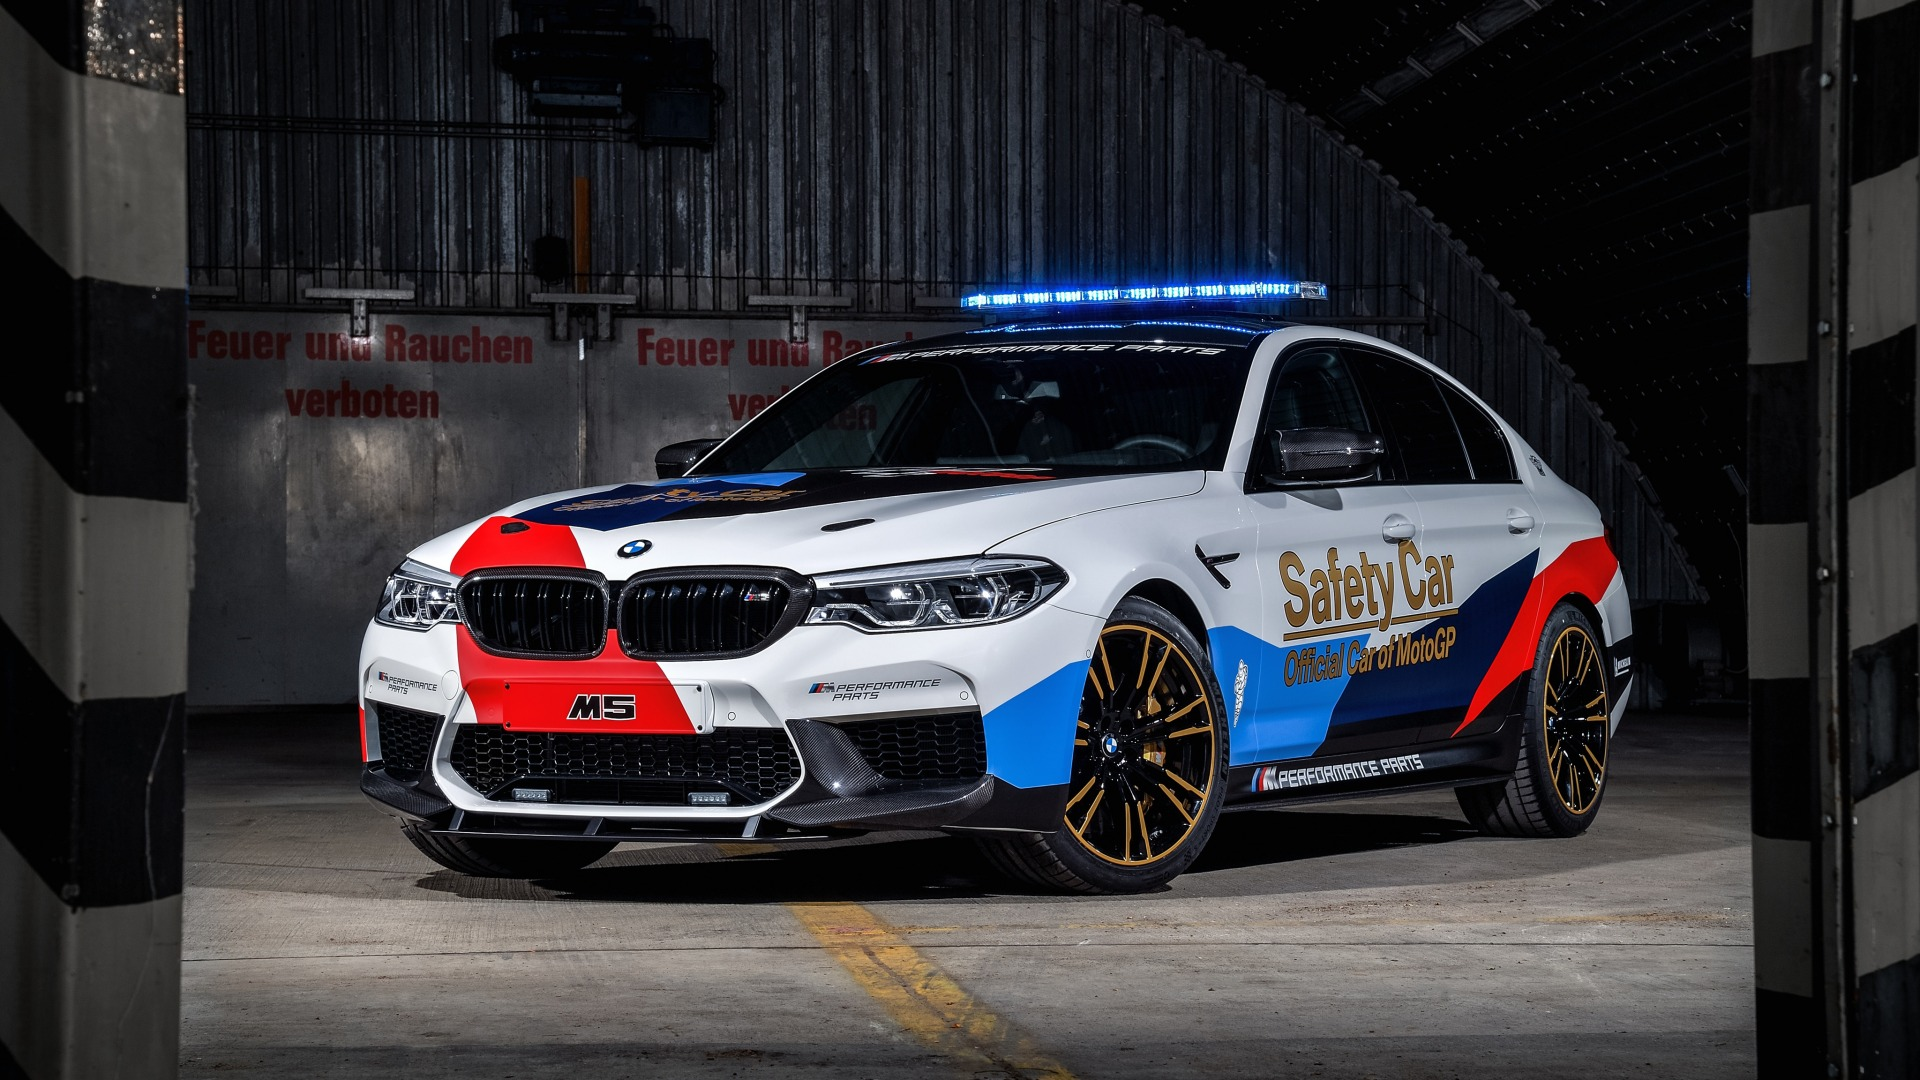 мигалки, BMW M5, 2018, MotoGP, Safety Car